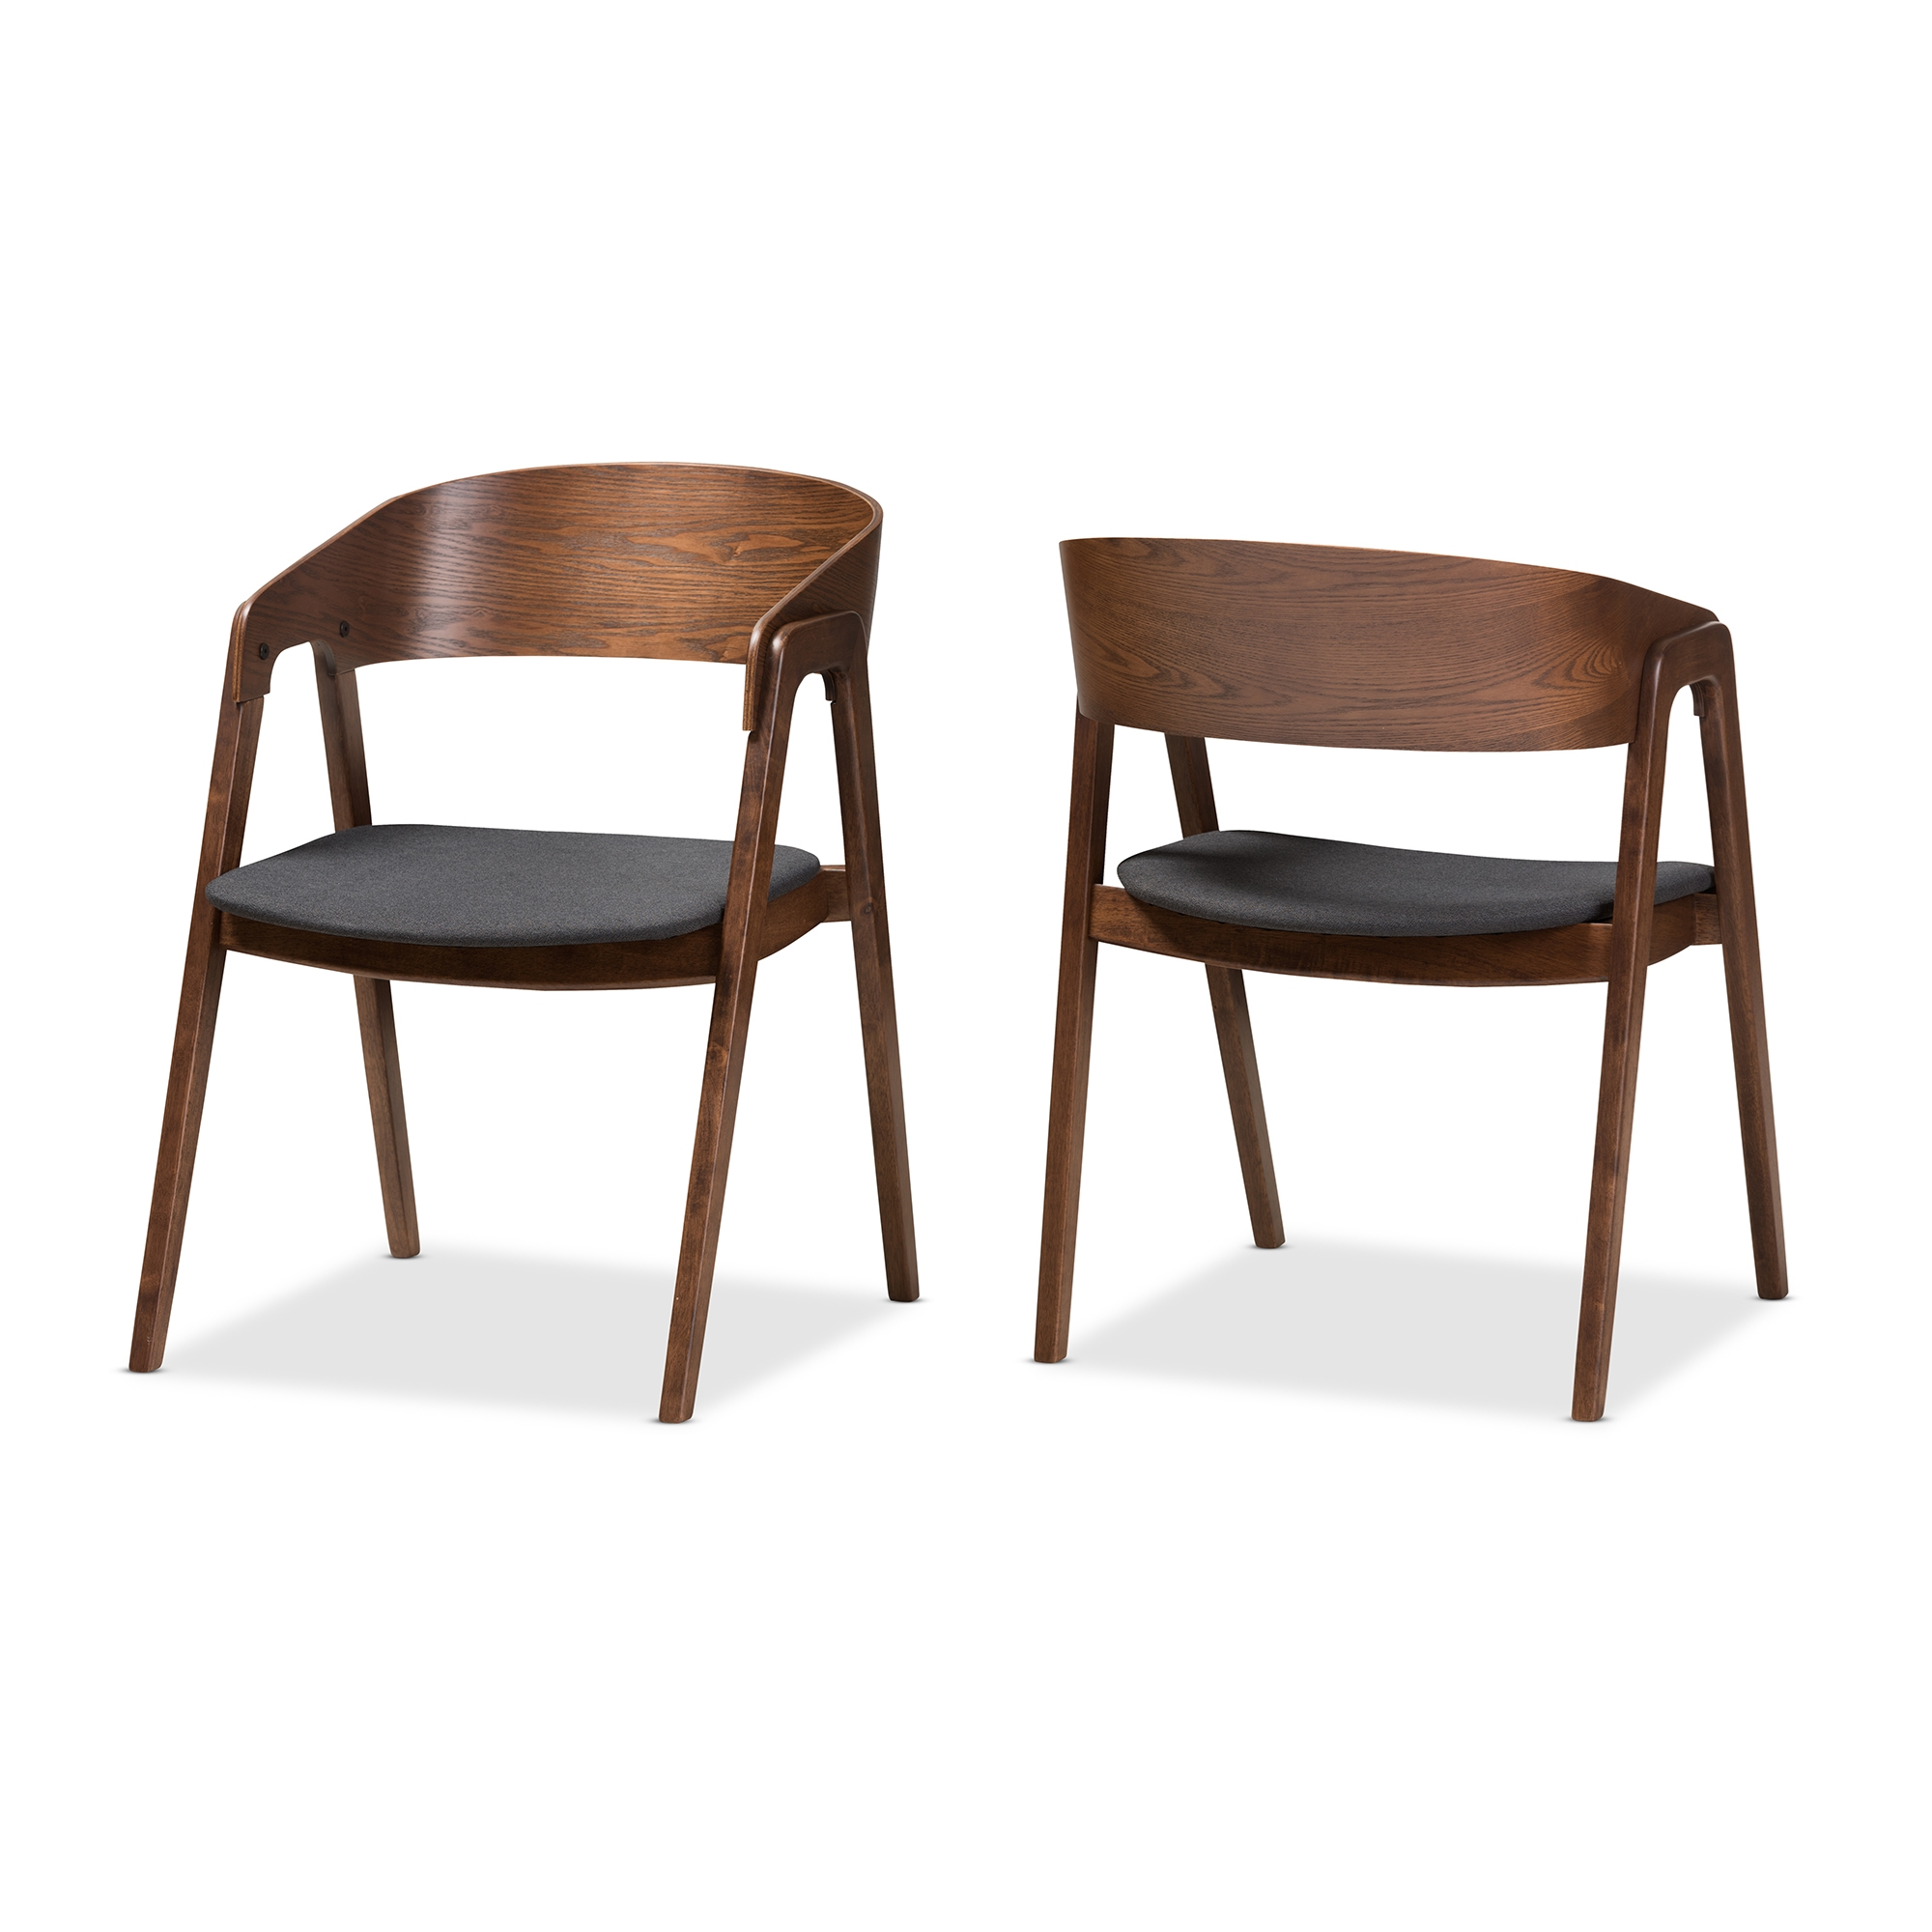 Baxton Studio Tatum Mid Century Modern Walnut Wood Dark Grey Fabric Dining  Chair Set Of 2